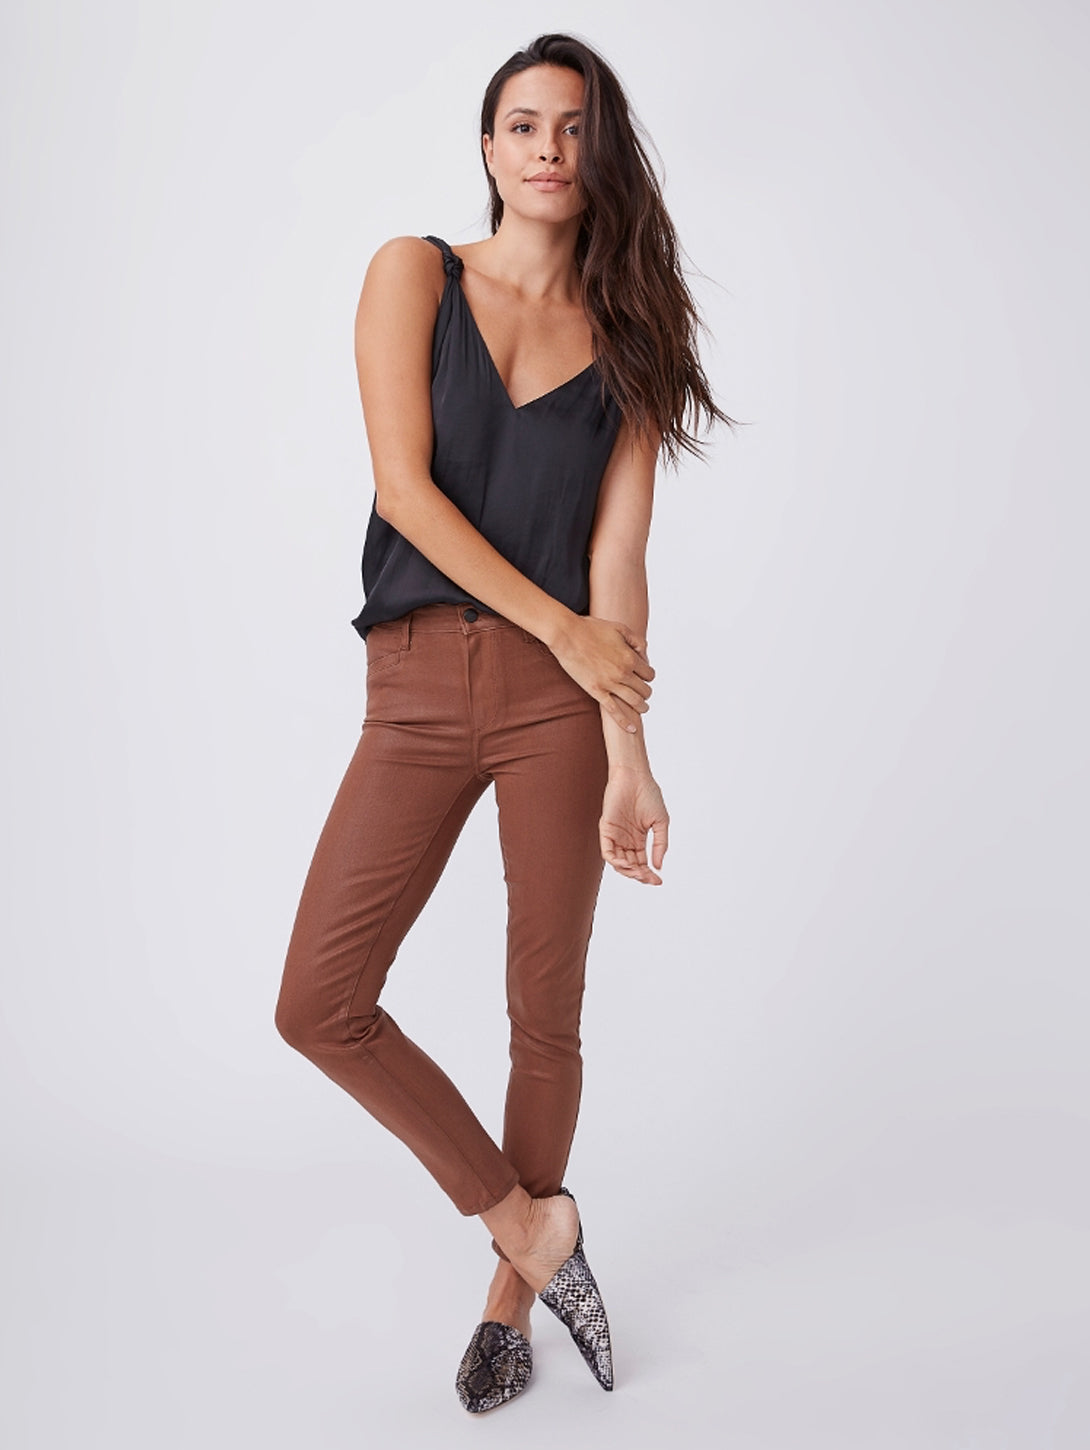 Hoxton Coated Ankle Skinny Jean - Cognac Luxe-Paige-Over the Rainbow